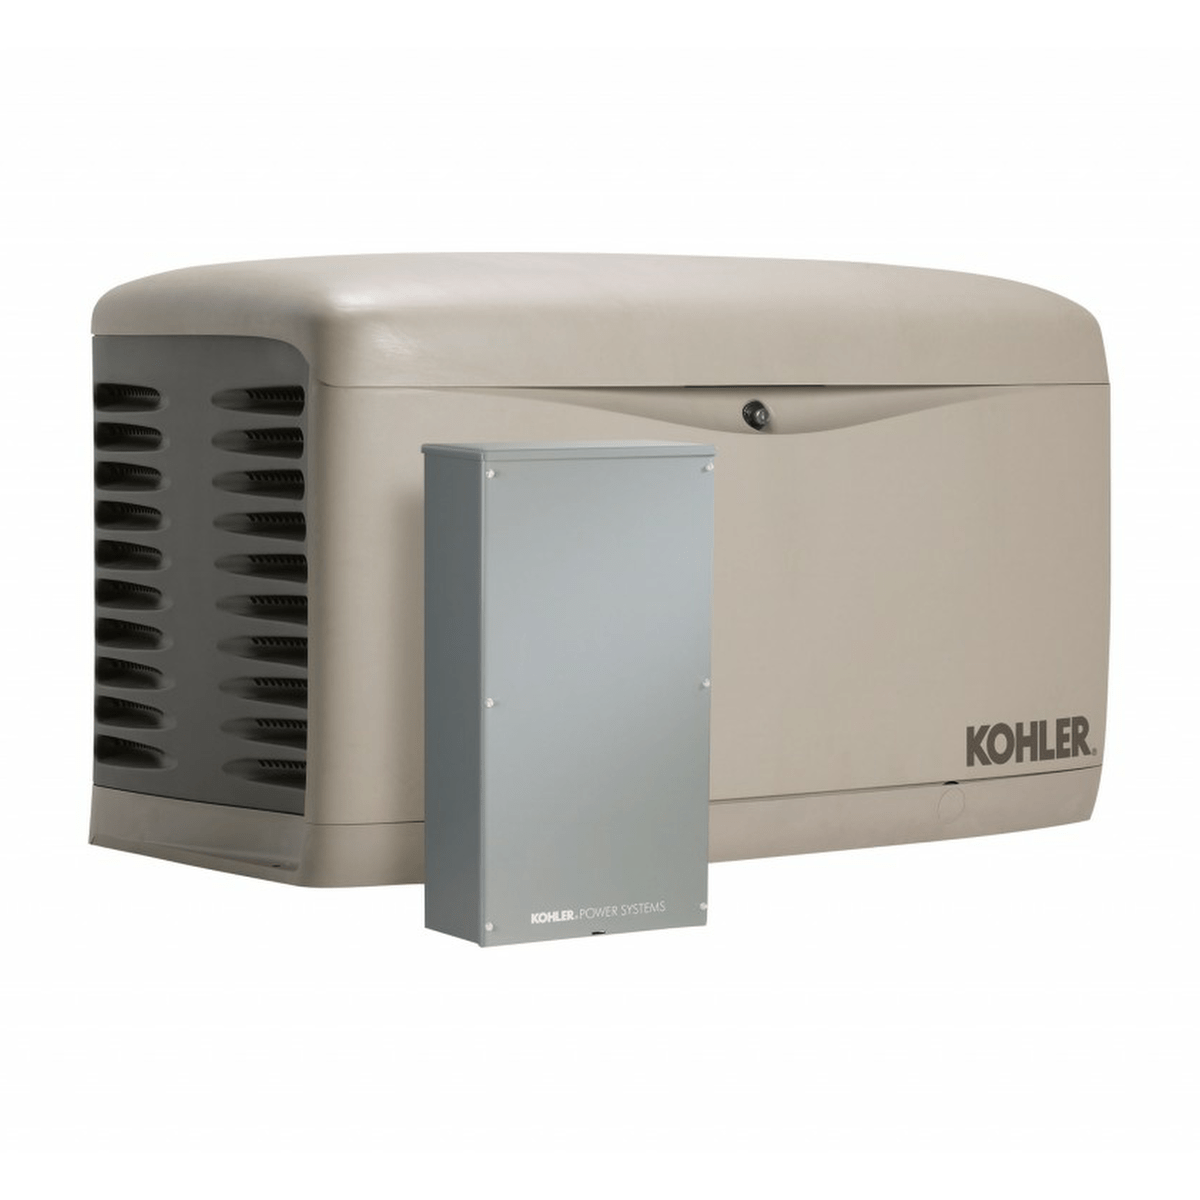 medium resolution of kohler 20resal 100lc16 20kw generator with 100a 16 circuit transfer switch